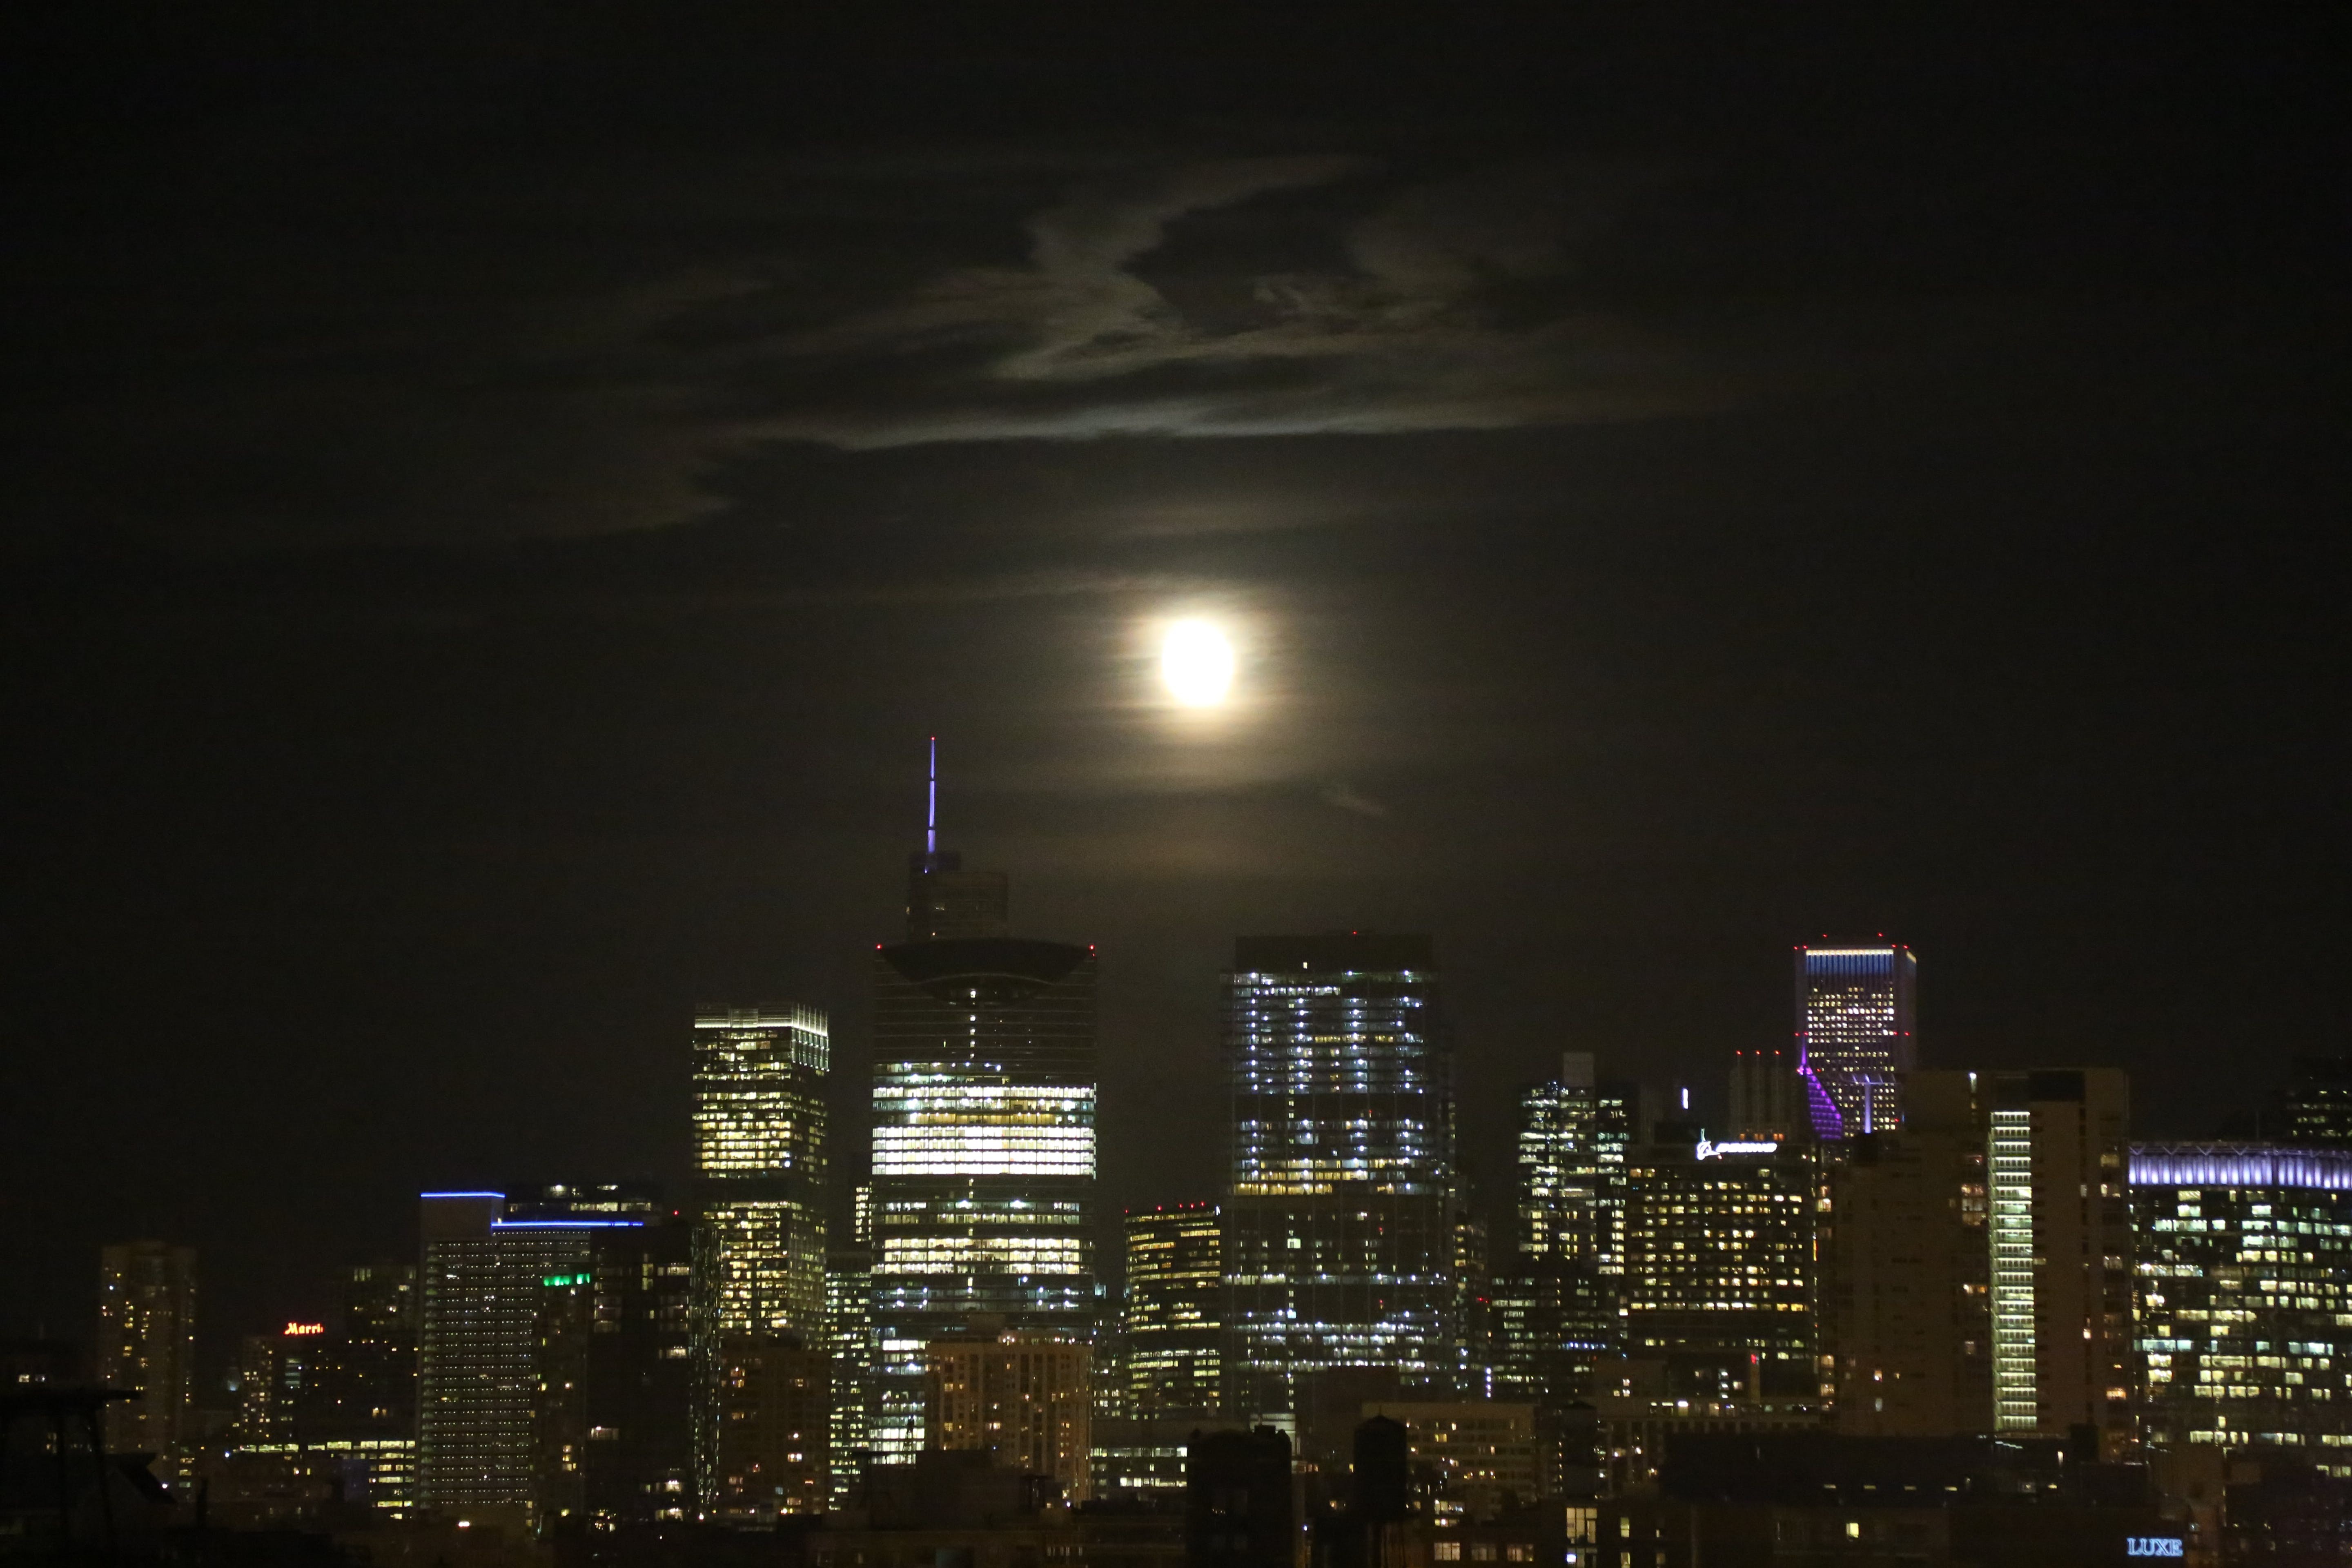 Free stock photo of Chicago Moon Rise